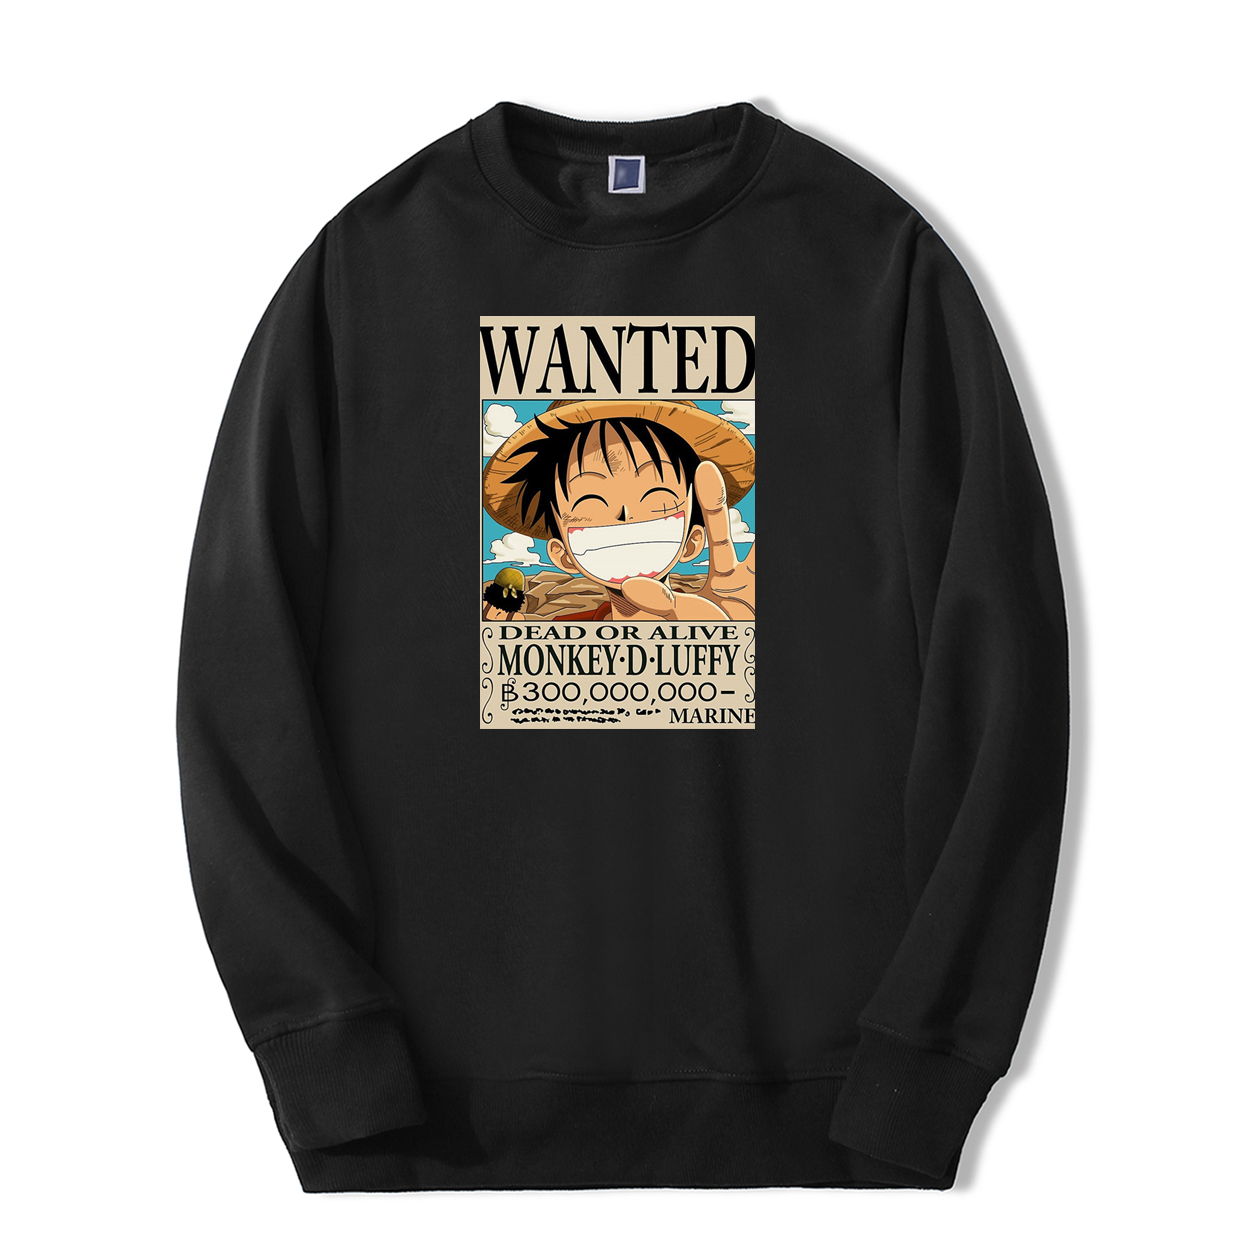 Japan Anime One Piece Sweatshirts Monkey <font><b>D</b></font> Luffy Wanted <font><b>2019</b></font> New Arrival Harajuku Mens Hoodie Fashion High Quality Tracksuit image